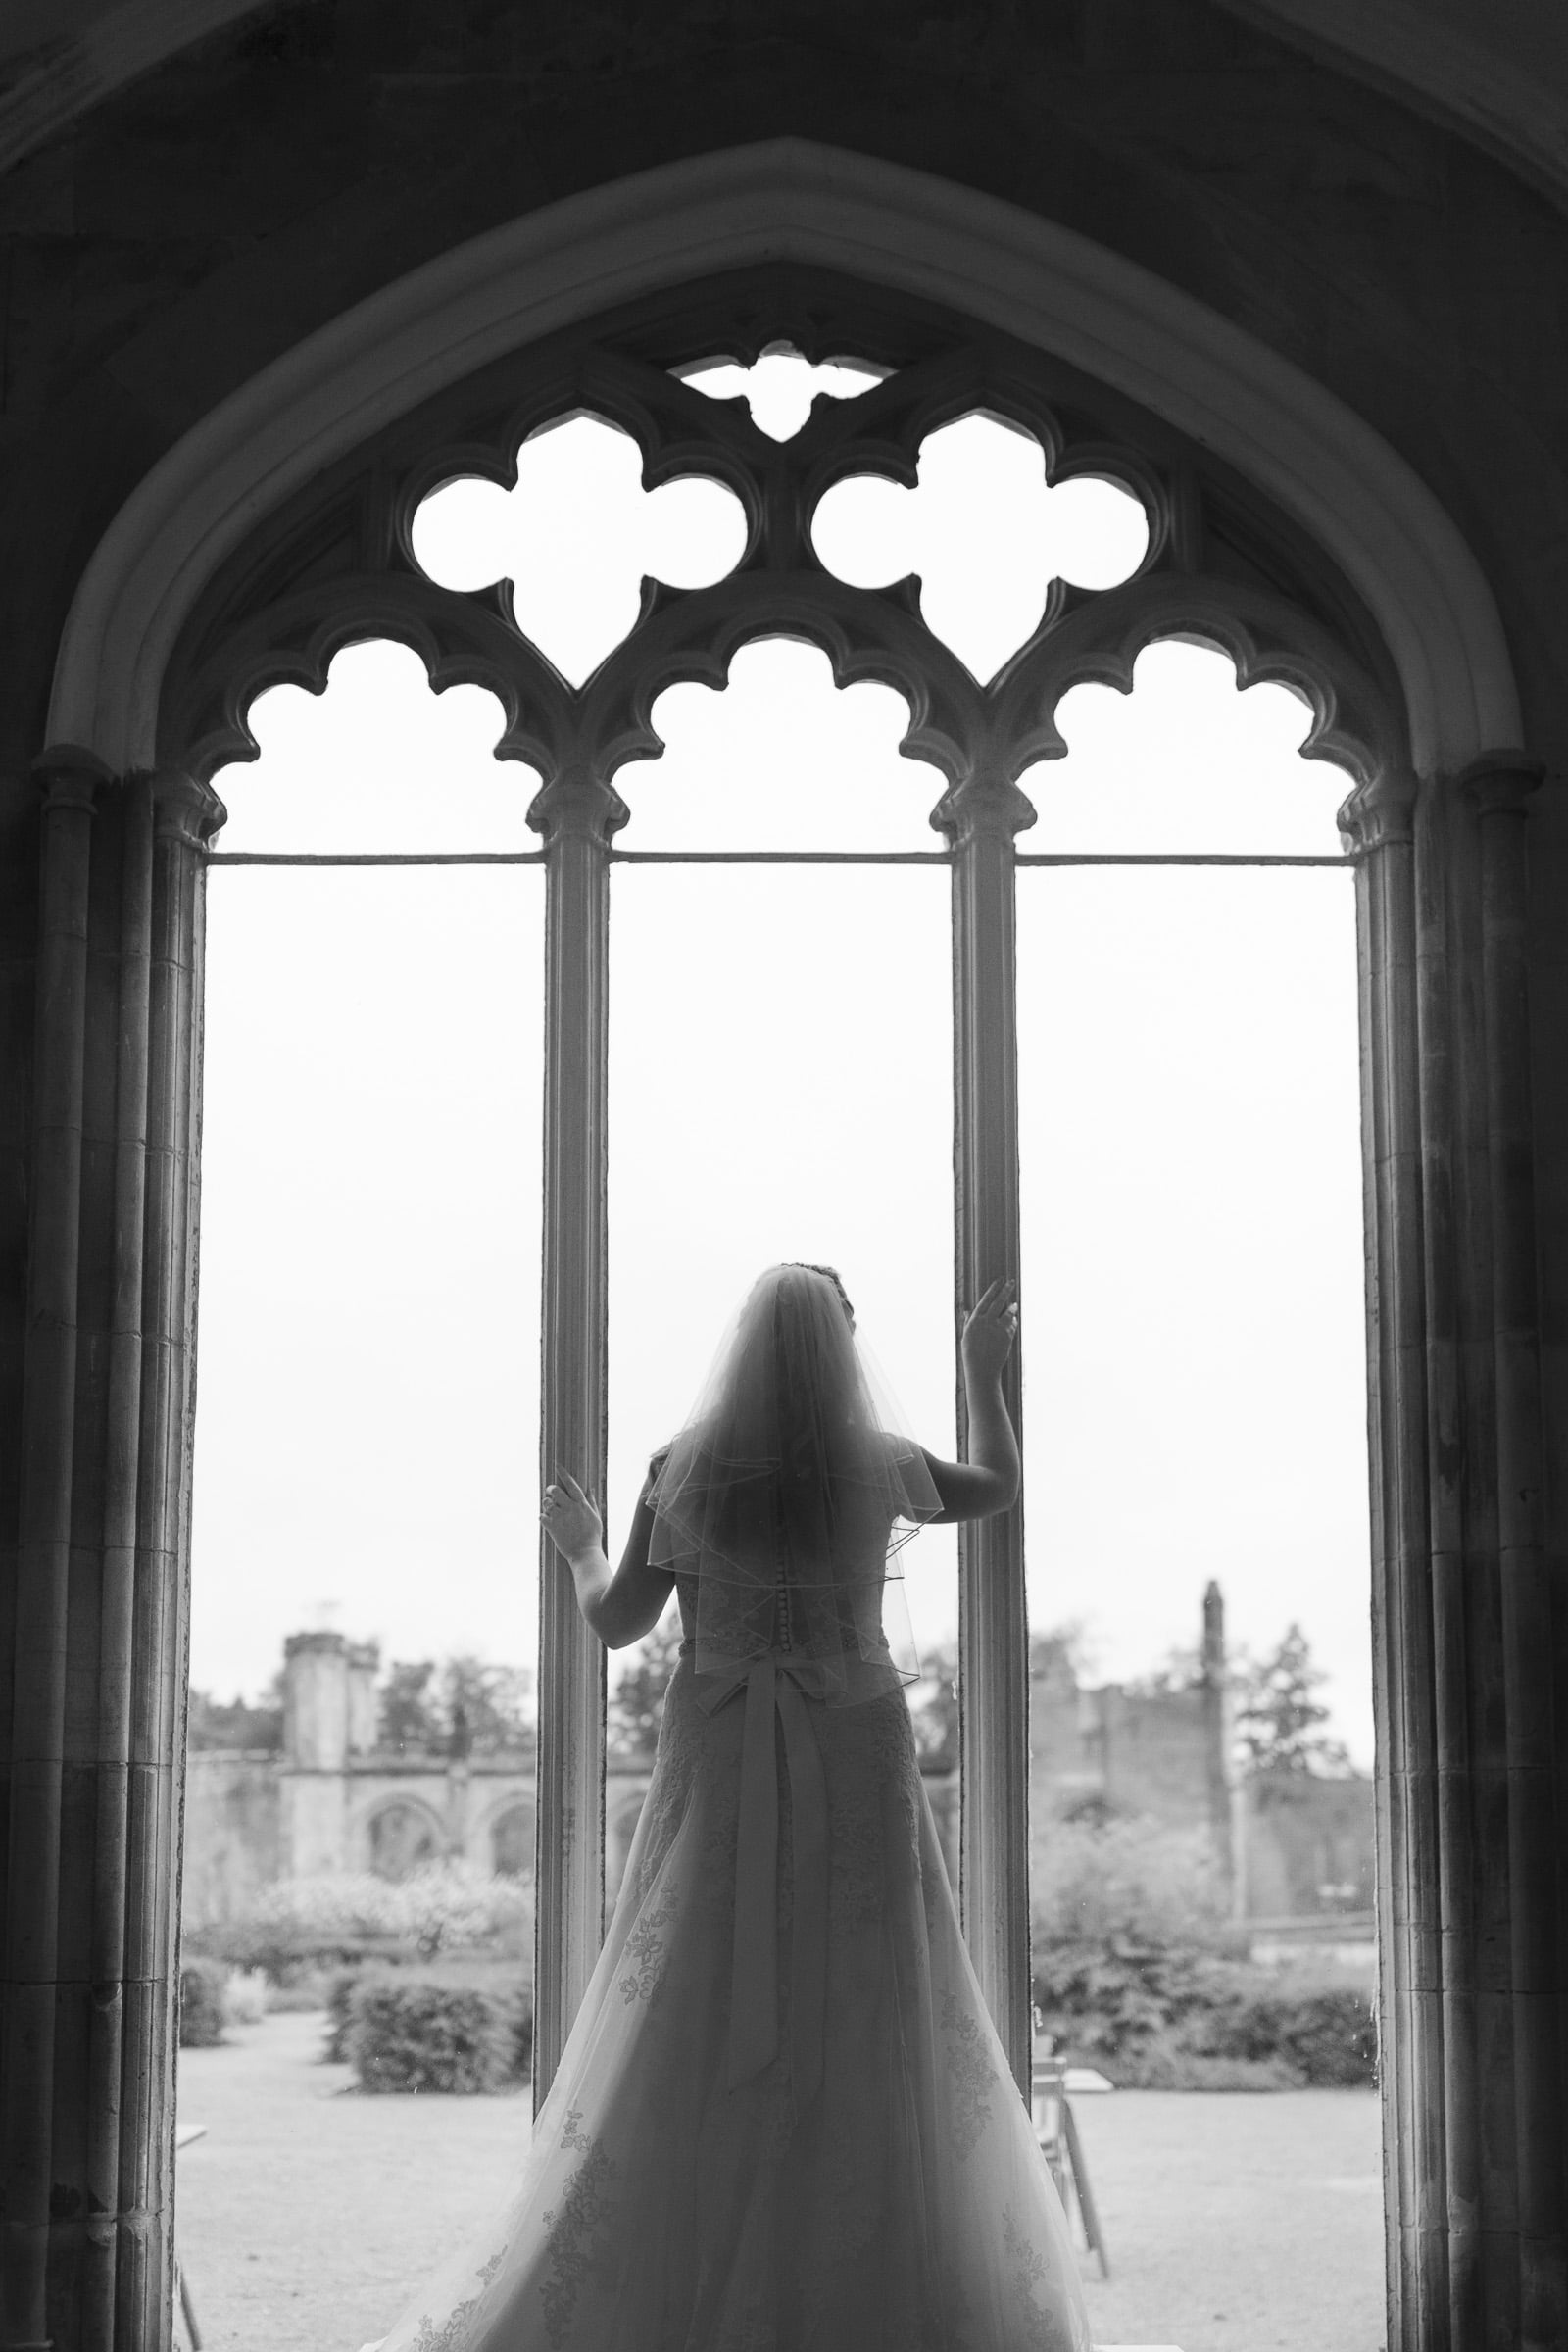 Becky Lowther Castle bridal photoshoot standing int he window of the castle